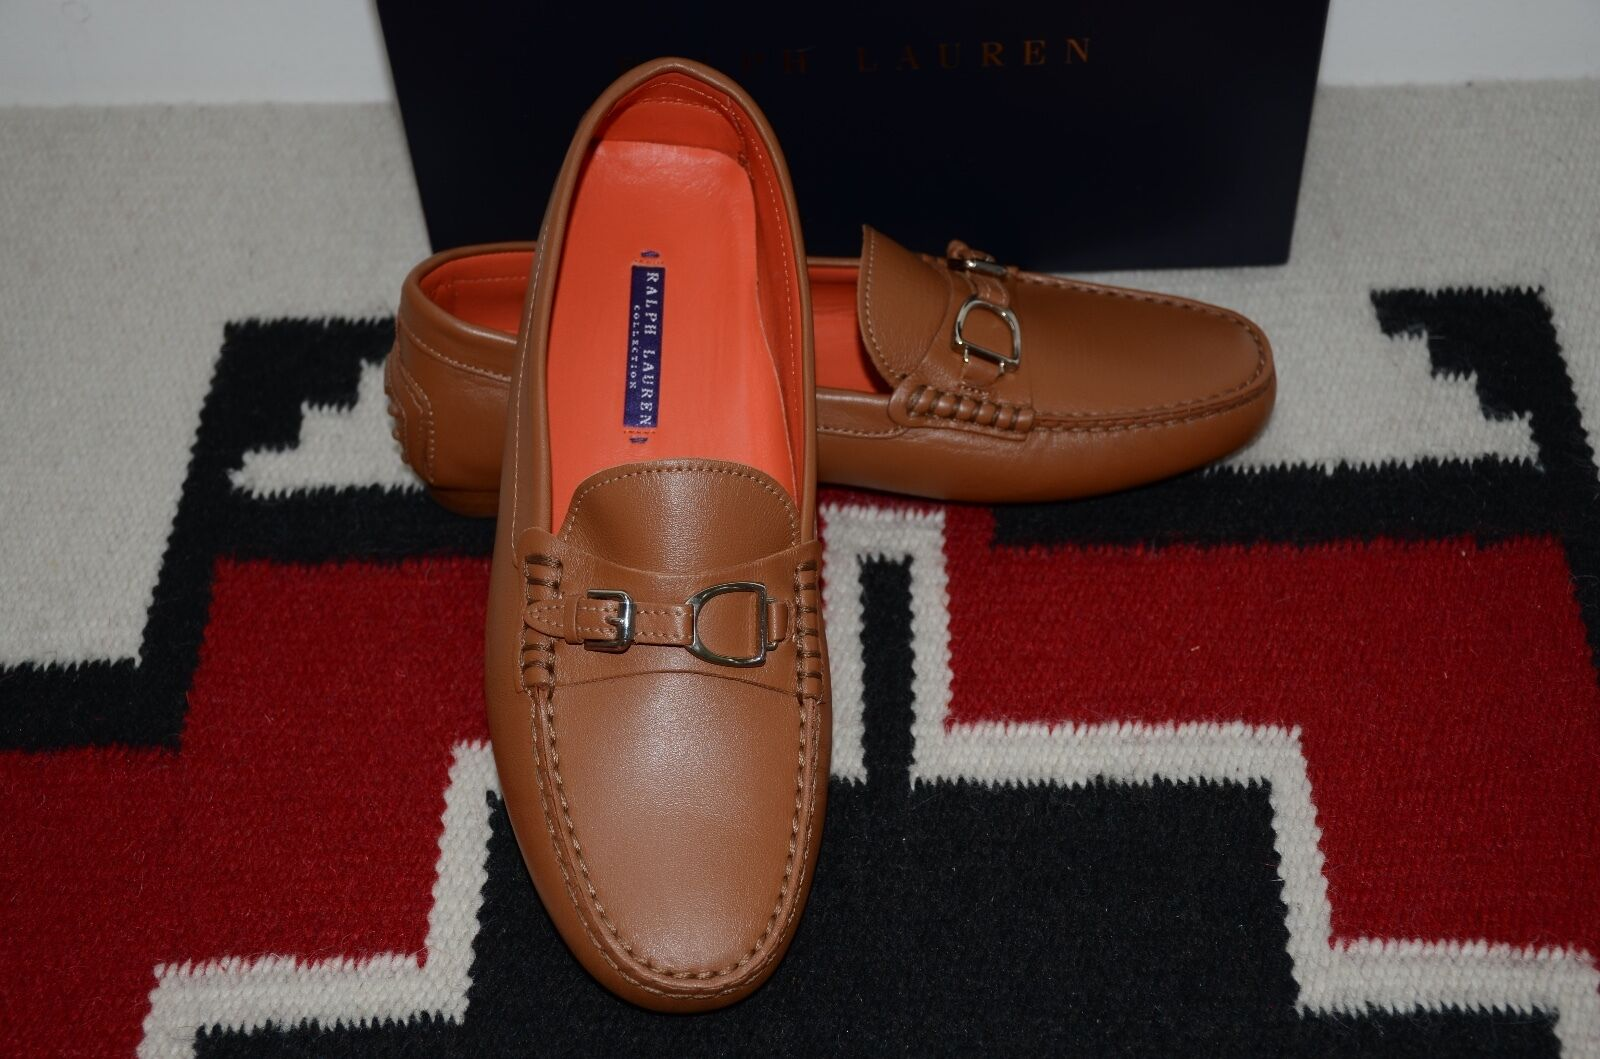 Ralph Lauren Collection Purple Label Leather Driving Loafers Shoes 10 D